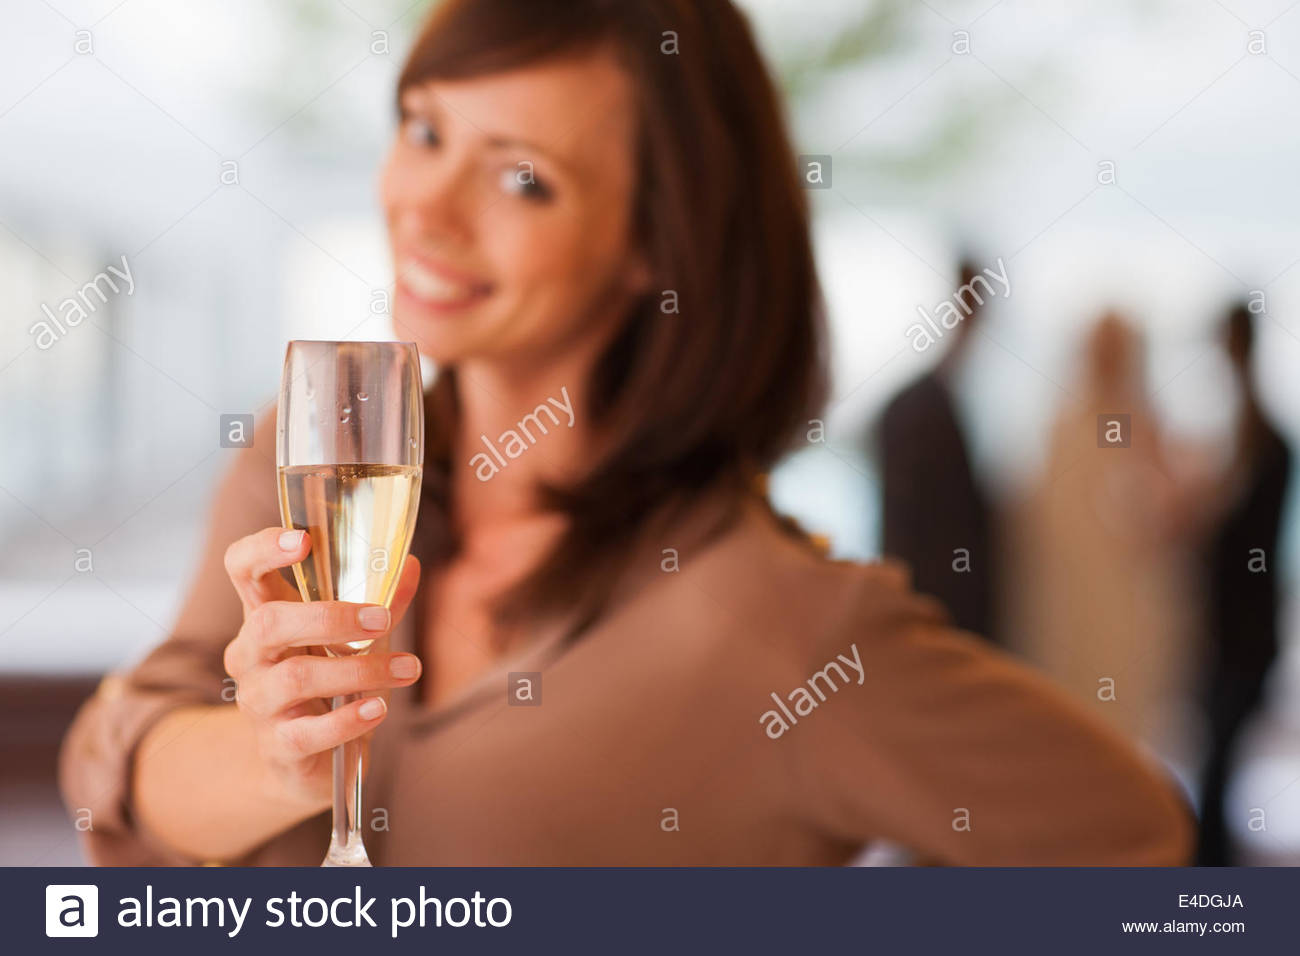 Woman drinking champagne - Stock Image